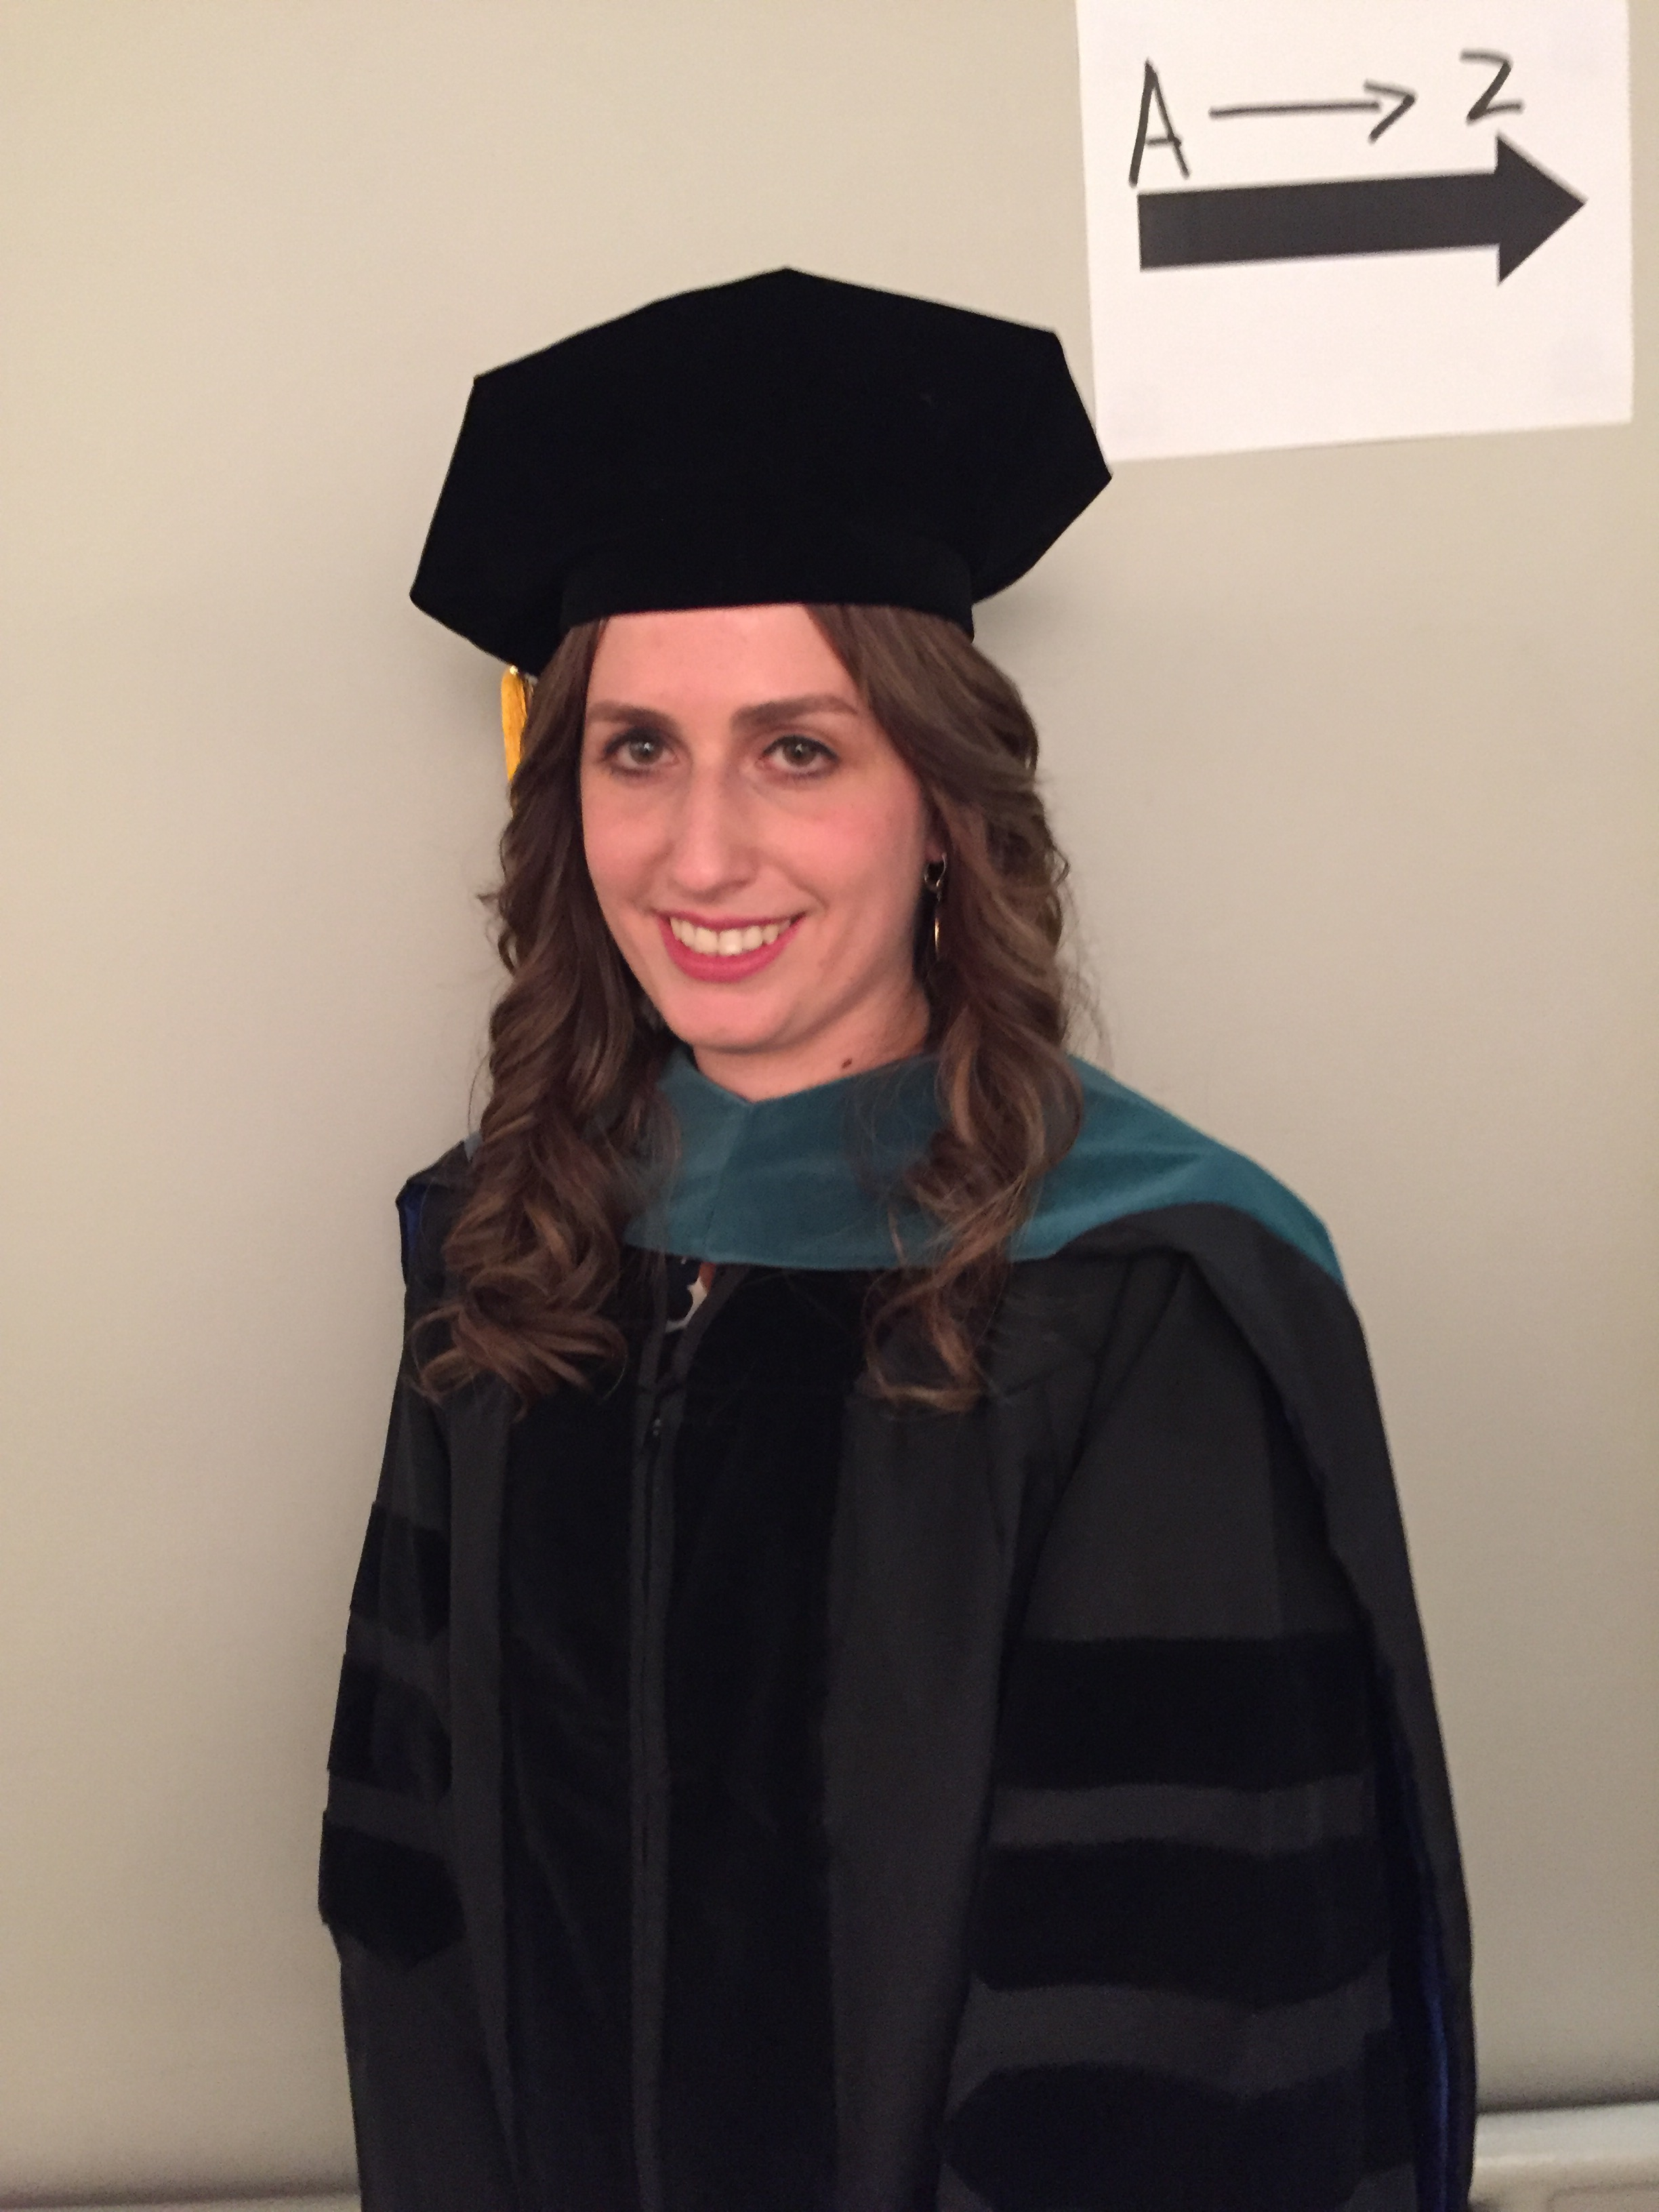 Lea Krasnow, class of 2016, graduate of the School of Health Sciences Doctor of Physical Therapy Program